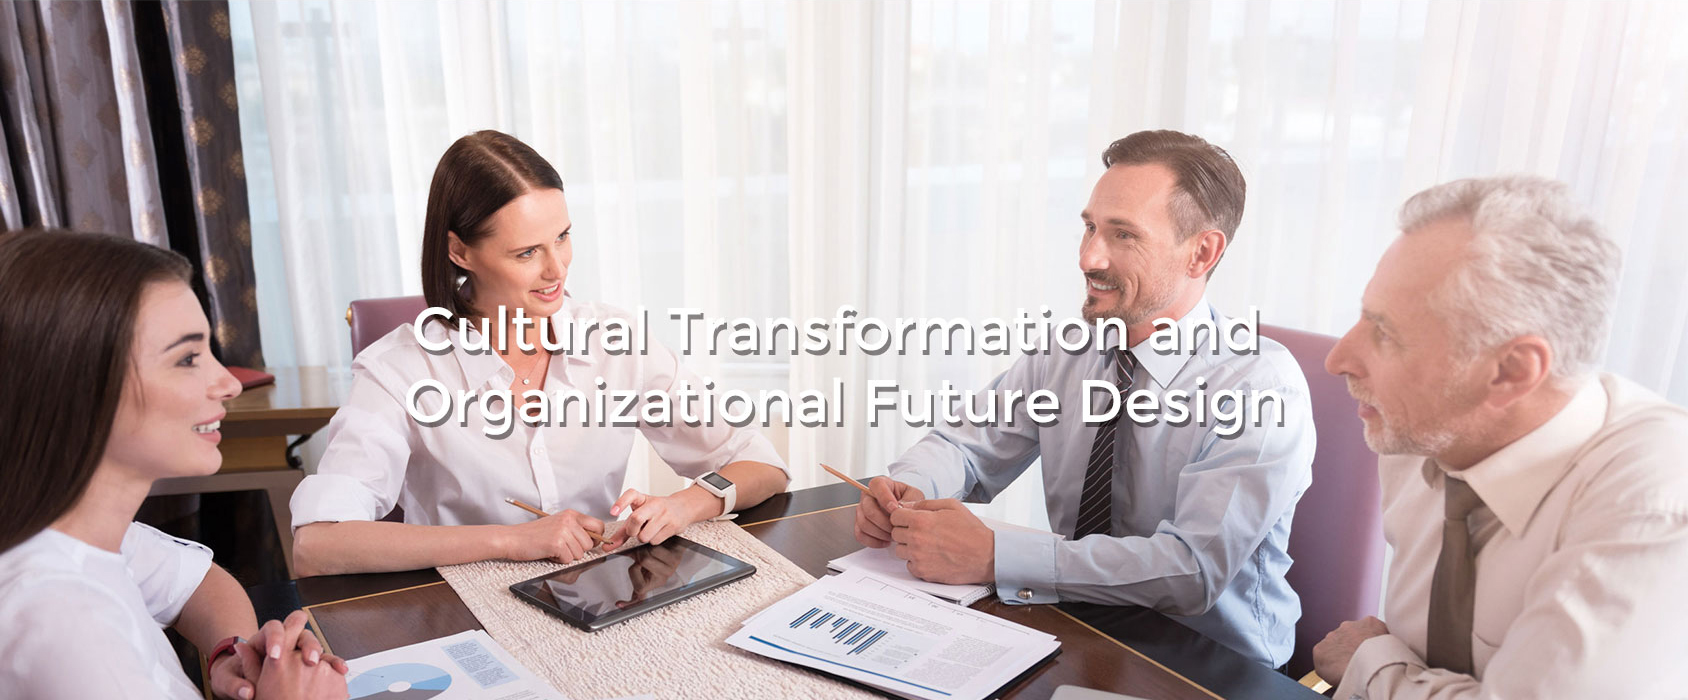 Cultural-Transformation-and-Organizational Future Design